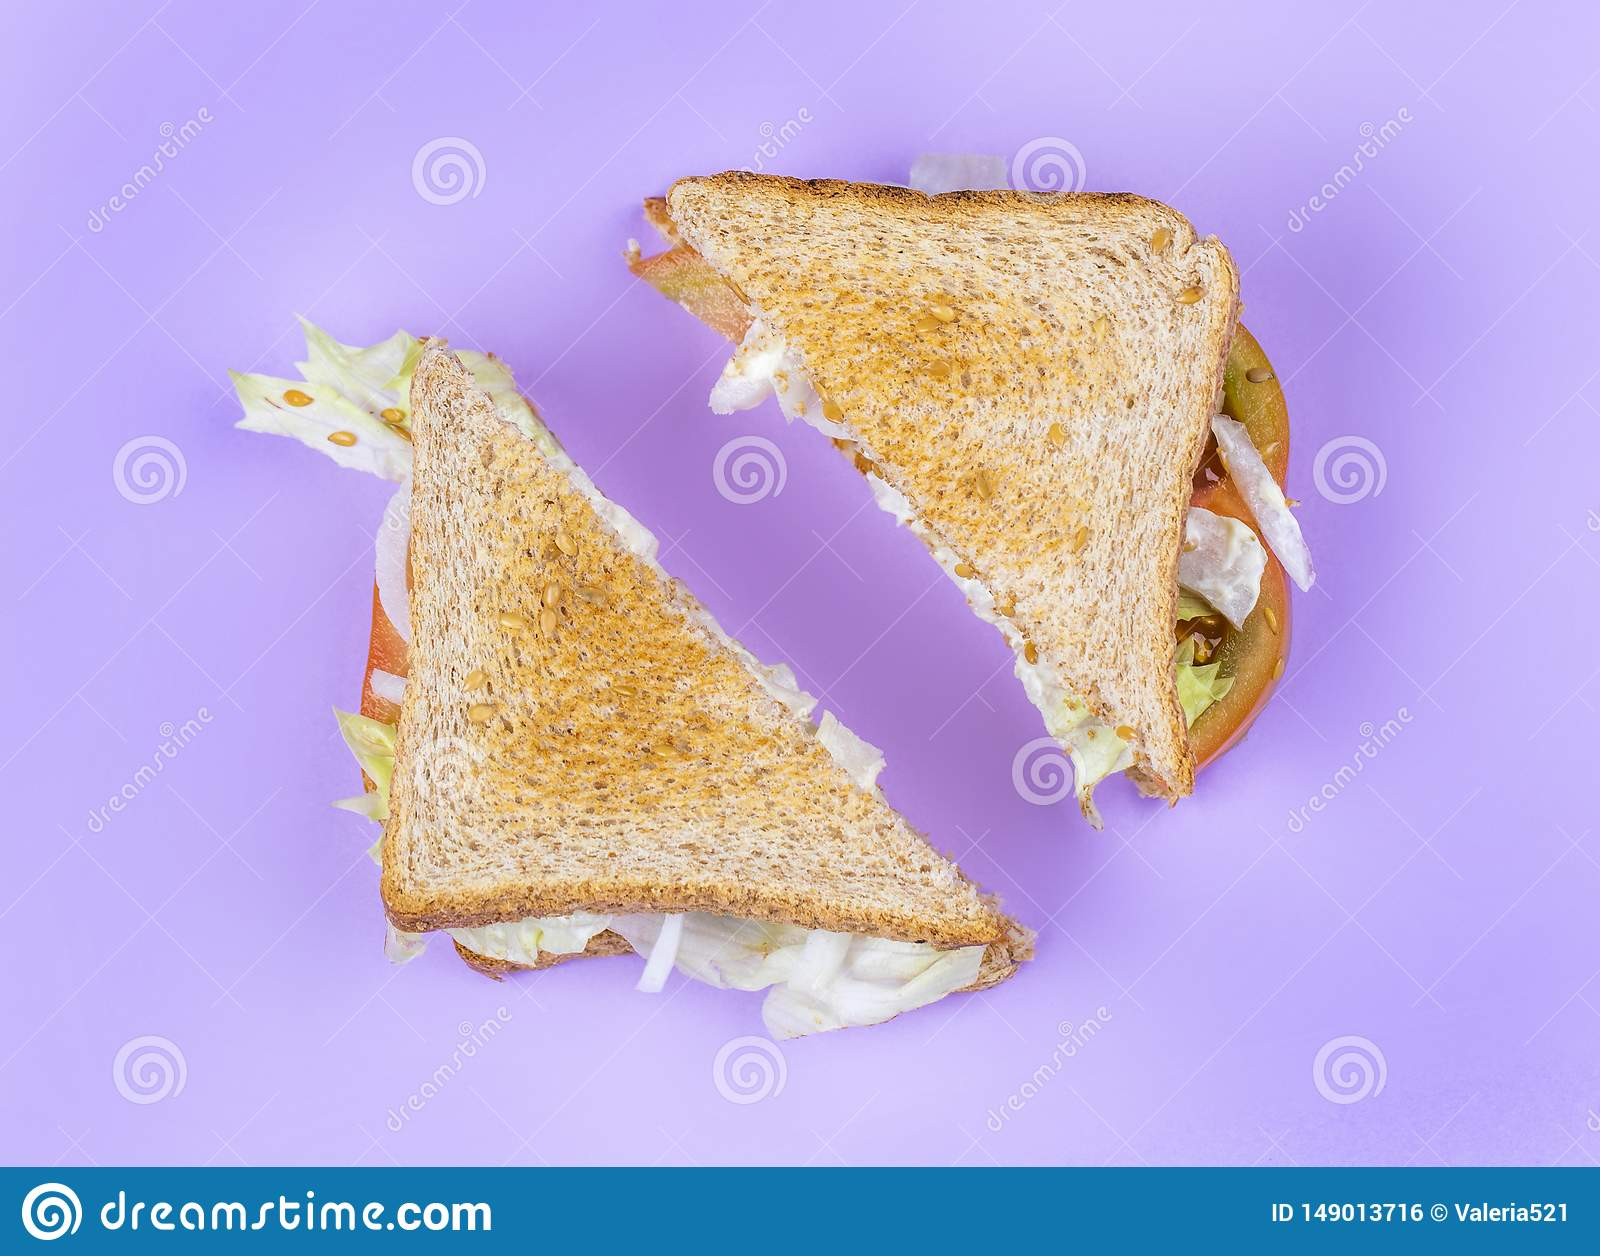 Sliced club sandwich on light violet background with tomatoes, onions, sesame and salade. Healthy food. Flat lay